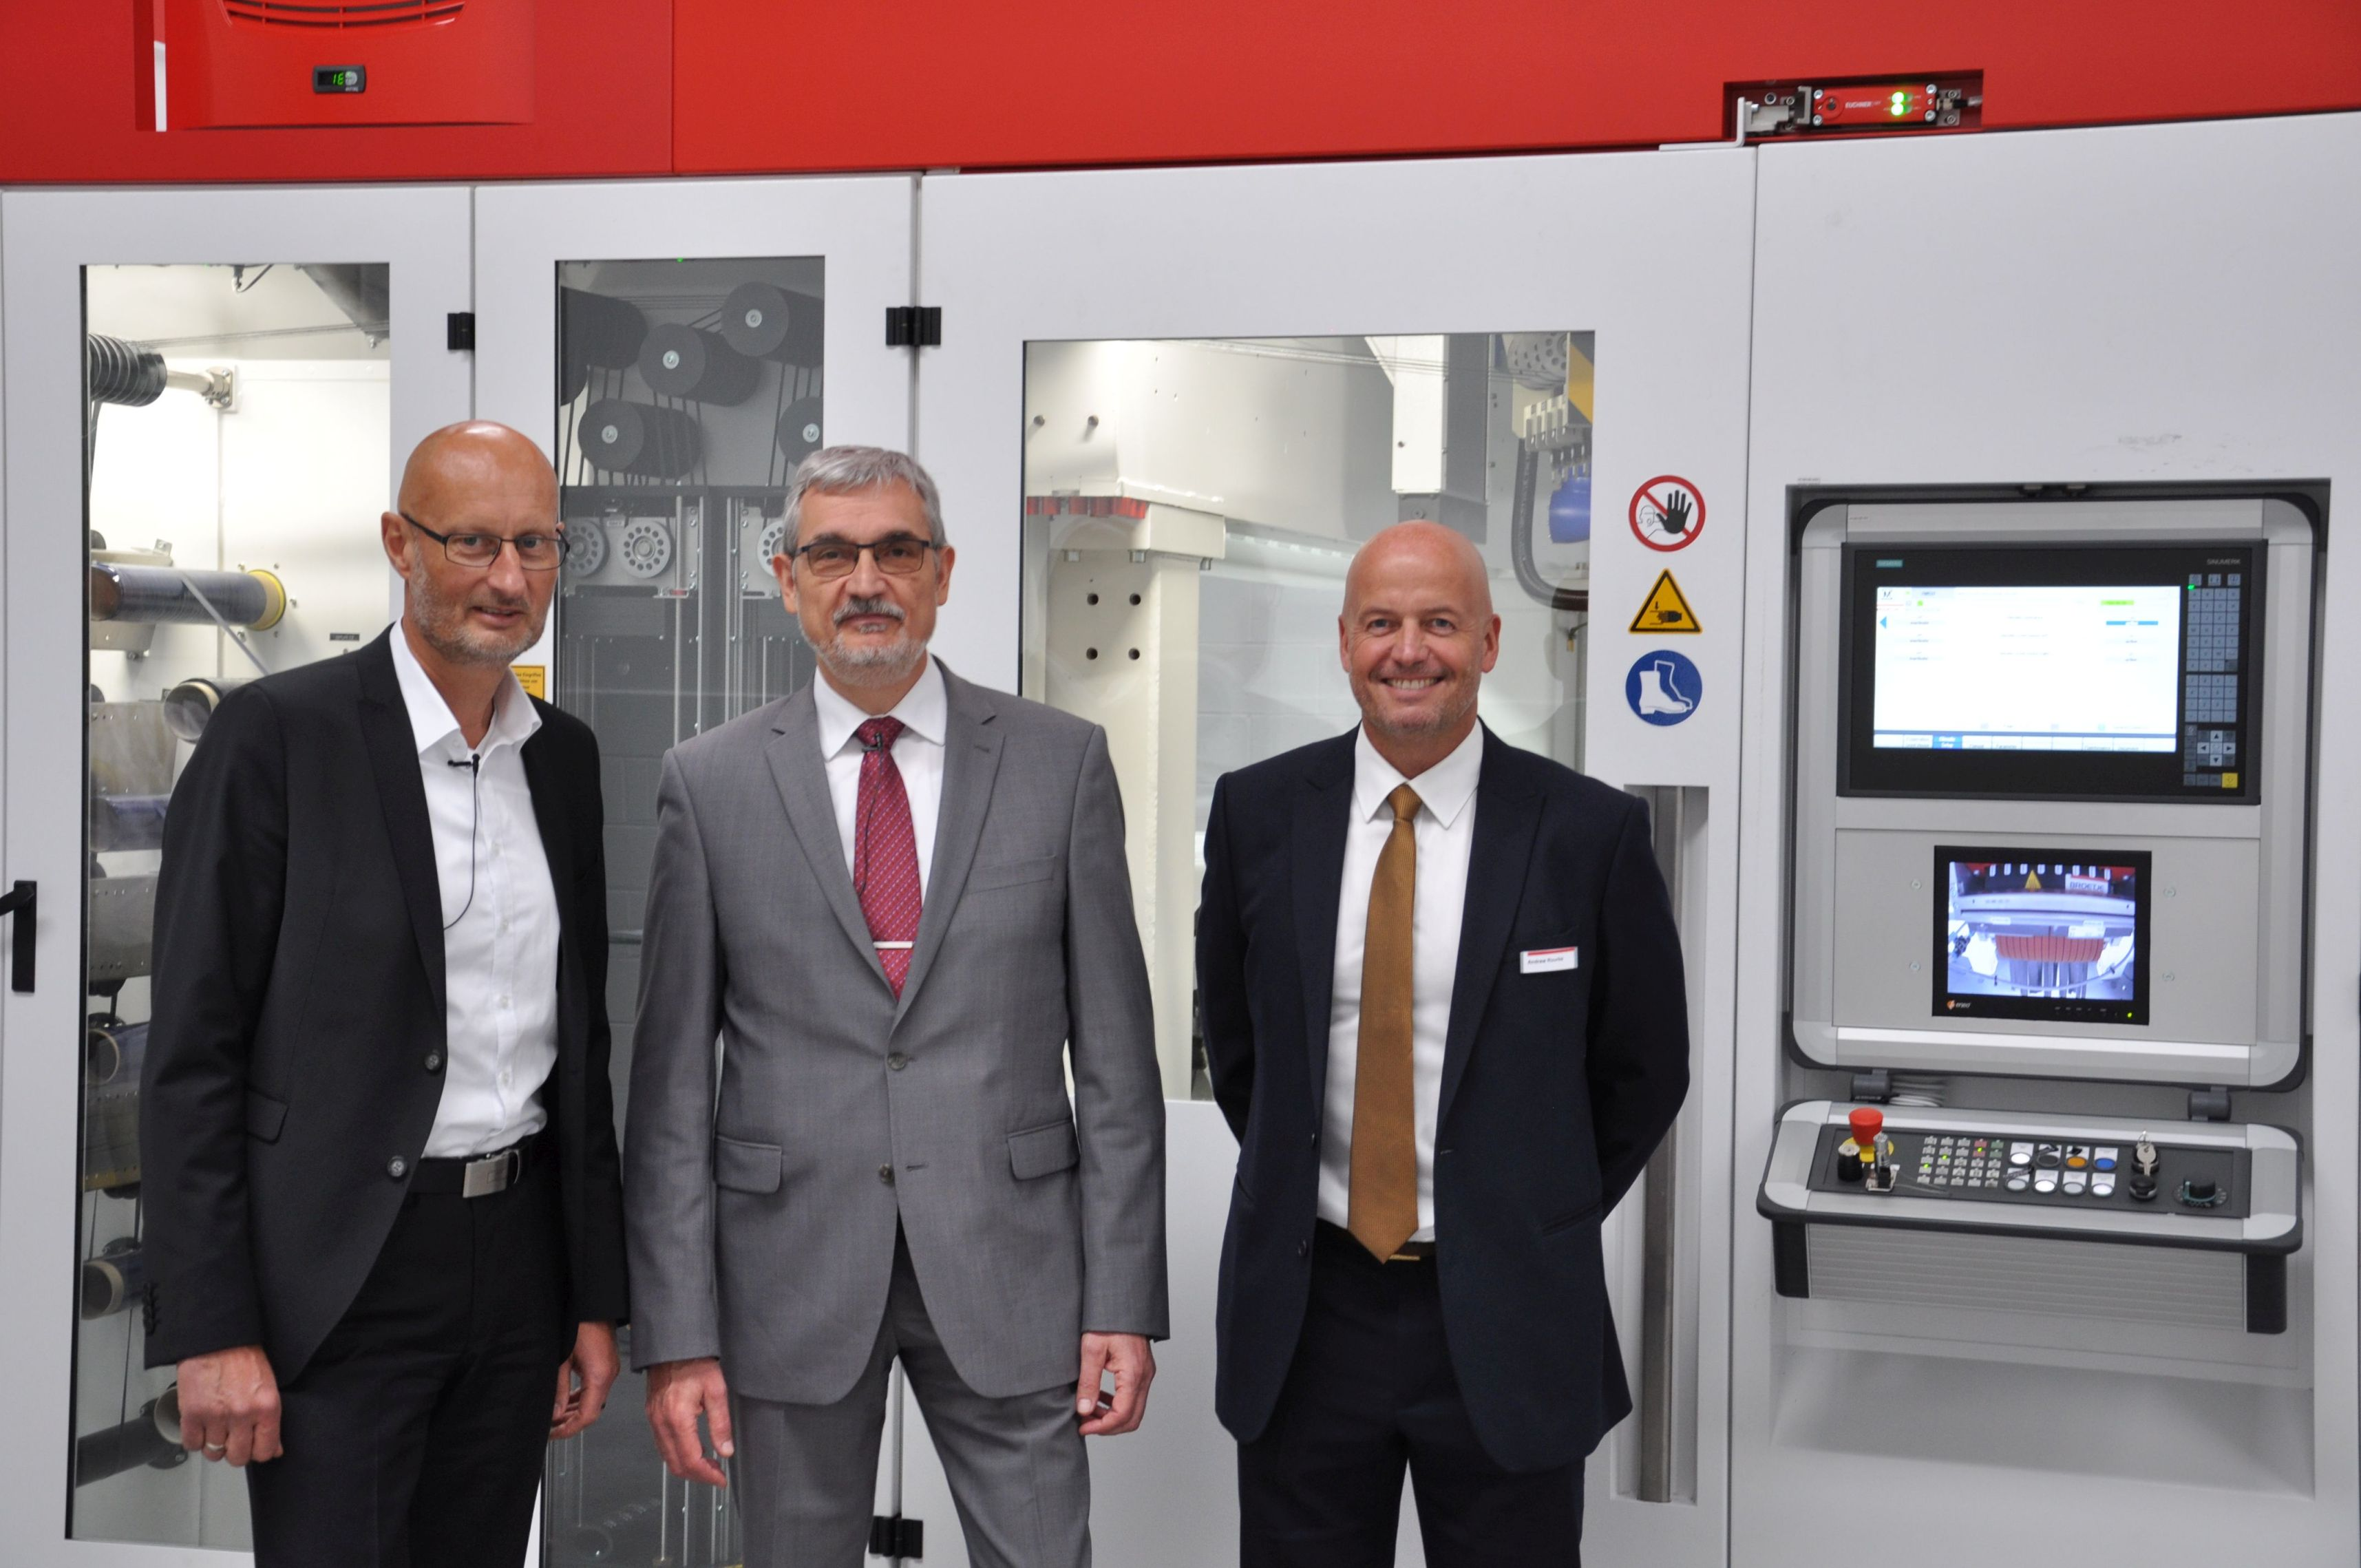 left to right: Lutz Neugebauer, CEO Broetje-Automation GmbH; Wulf Heuschen, CEO Broetje-Automation UK Ltd.; Andrew Rourke, Head of Business Development & Sales, Broetje-Automation UK Ltd. (Photo: Broetje-Automation)